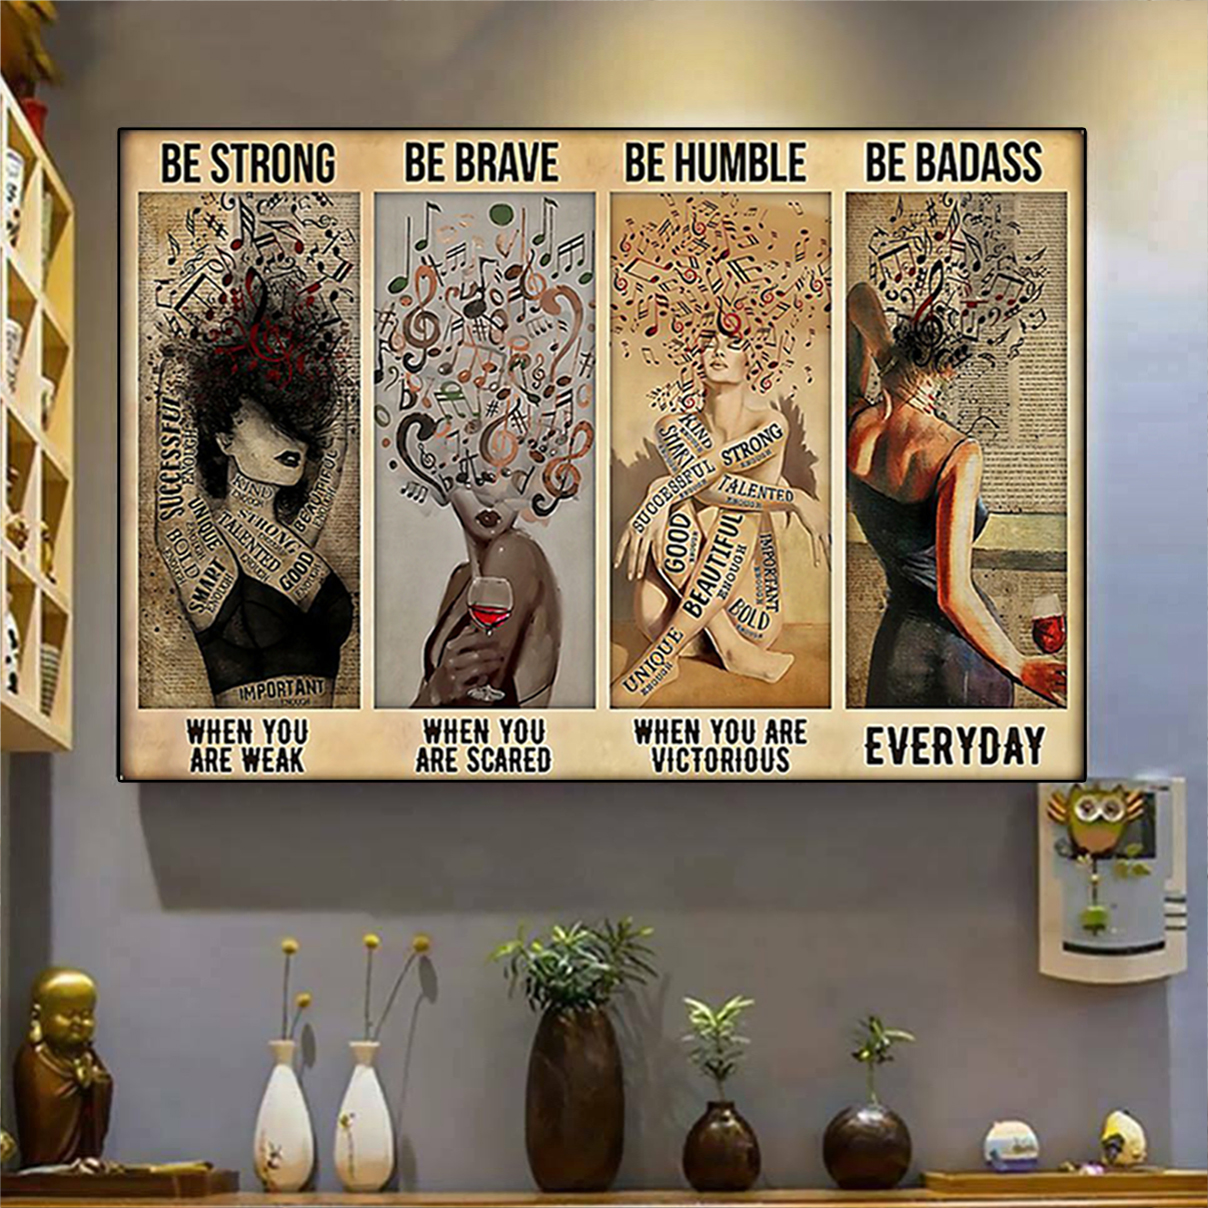 Girl and music be strong be brave be humble be badass poster A3